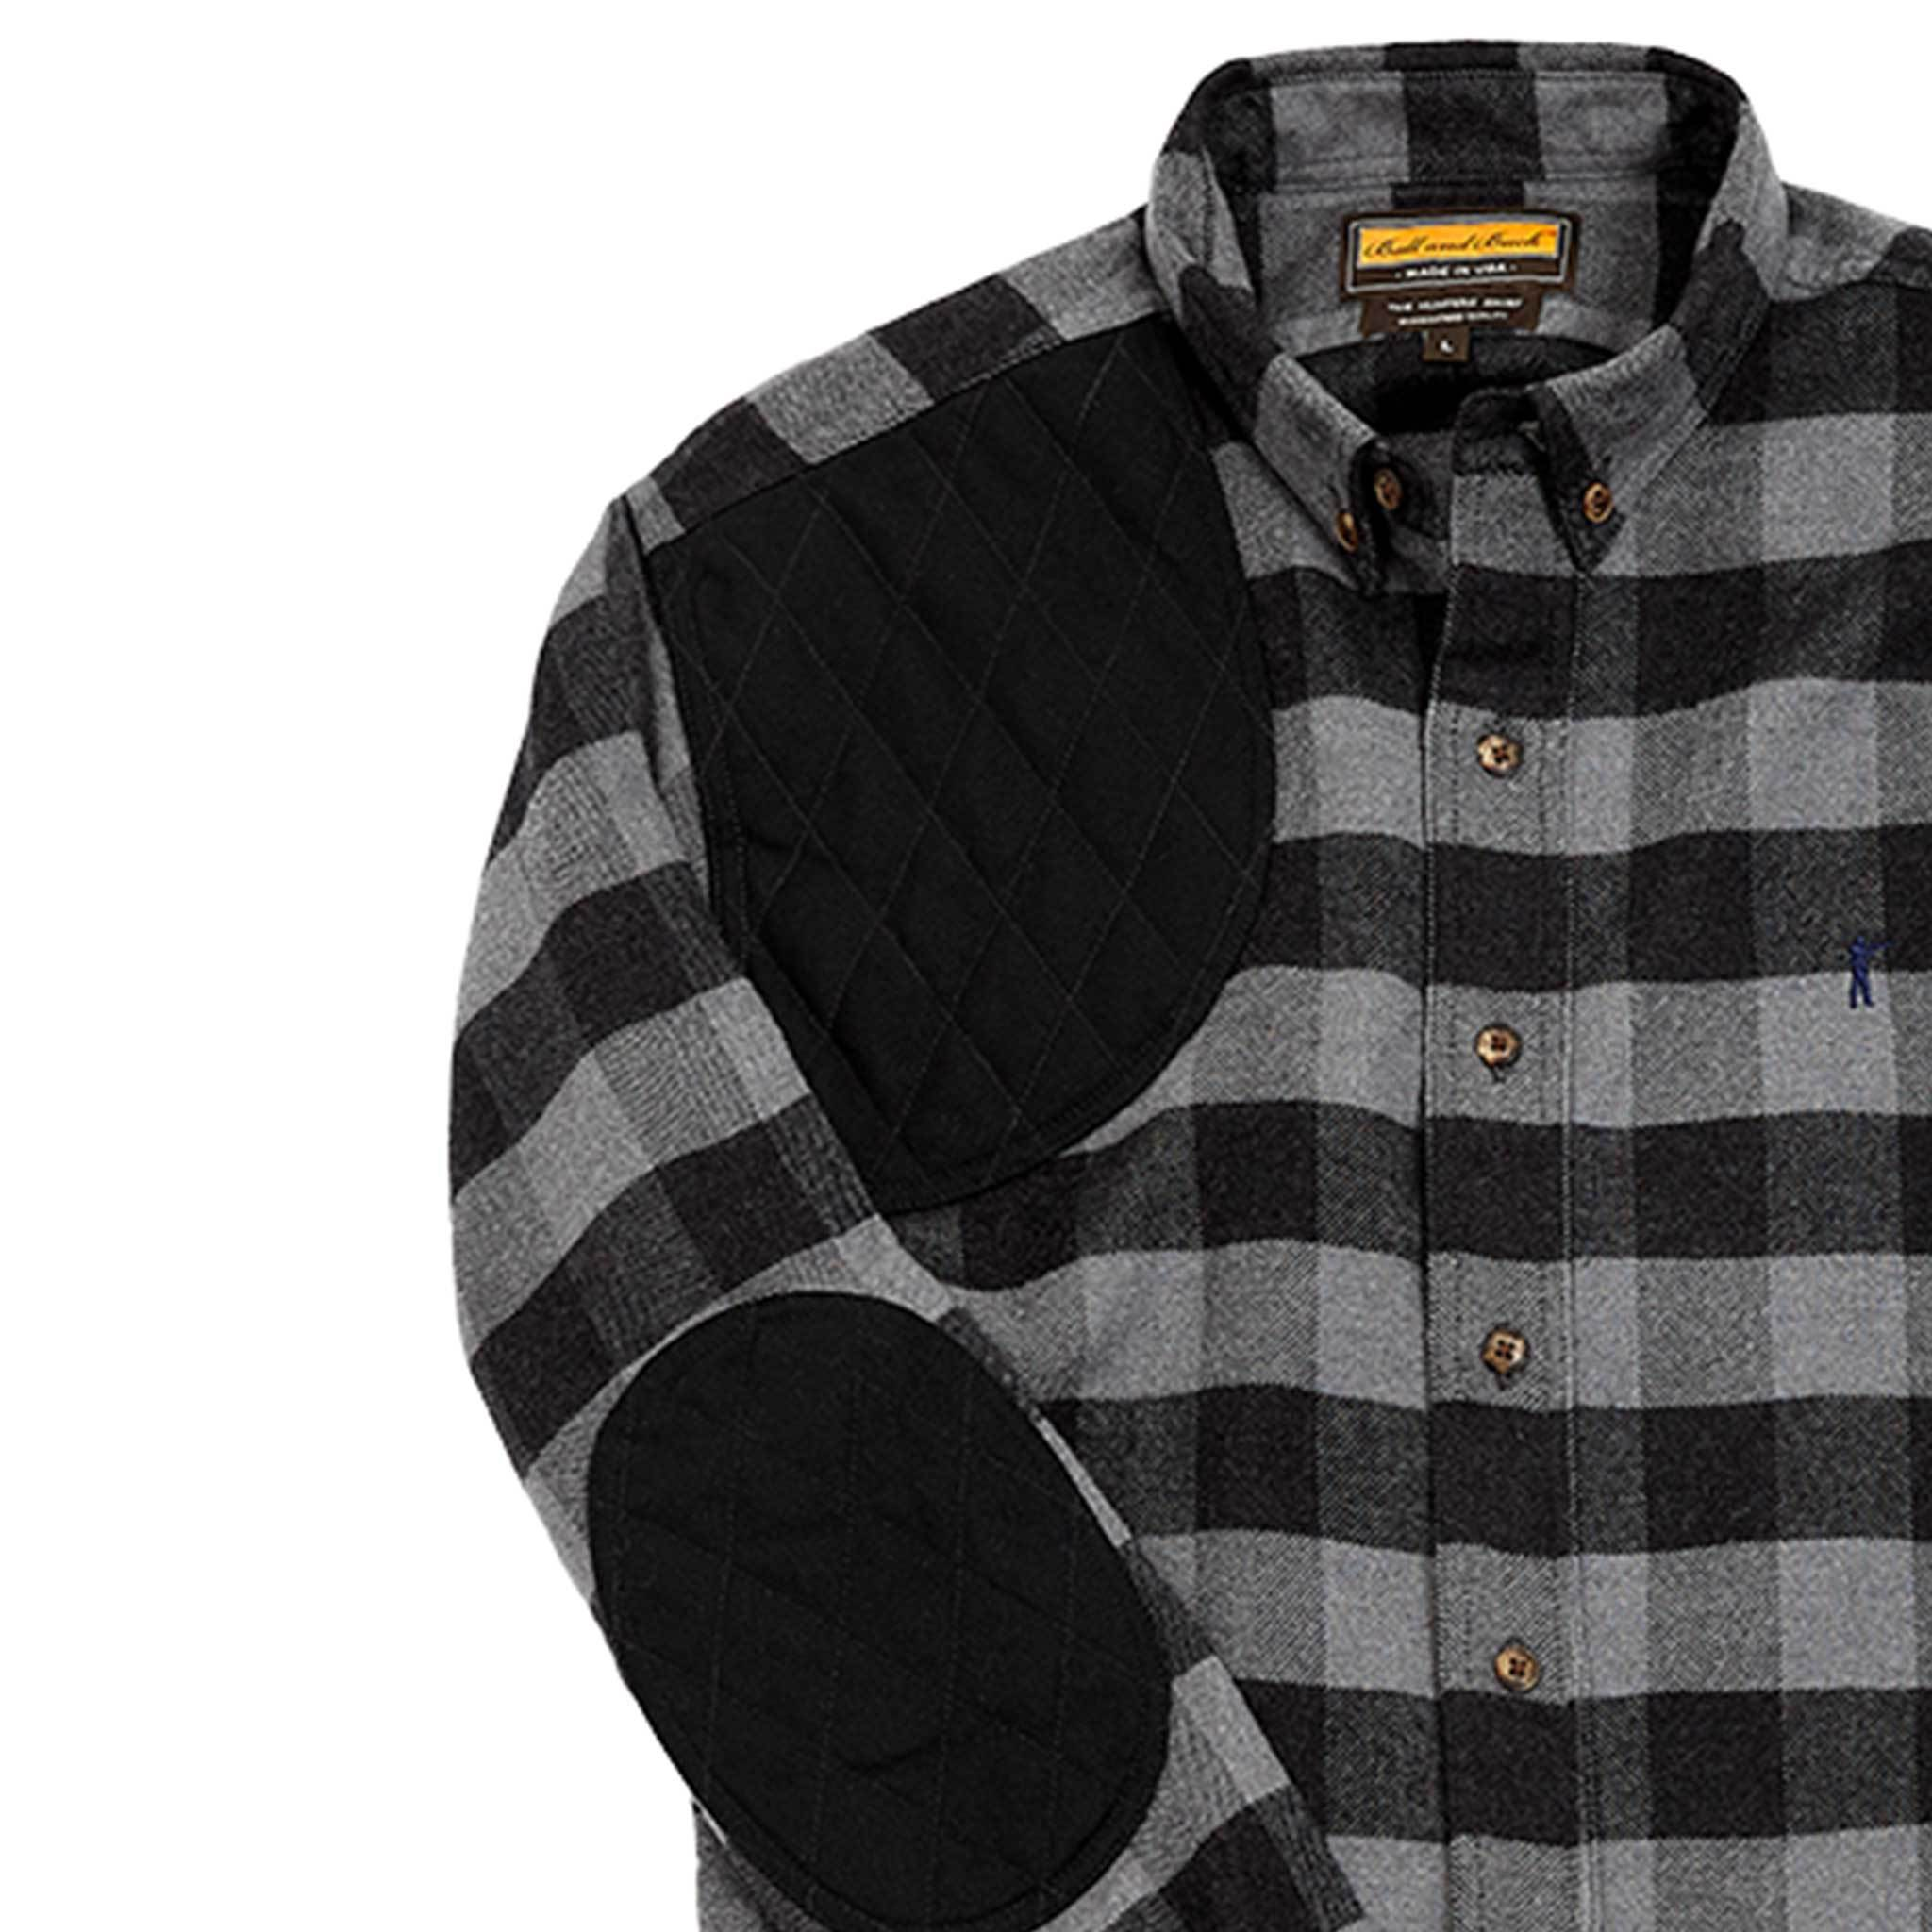 Premium Hunters Shirt, Bighorn/Quilted Duck